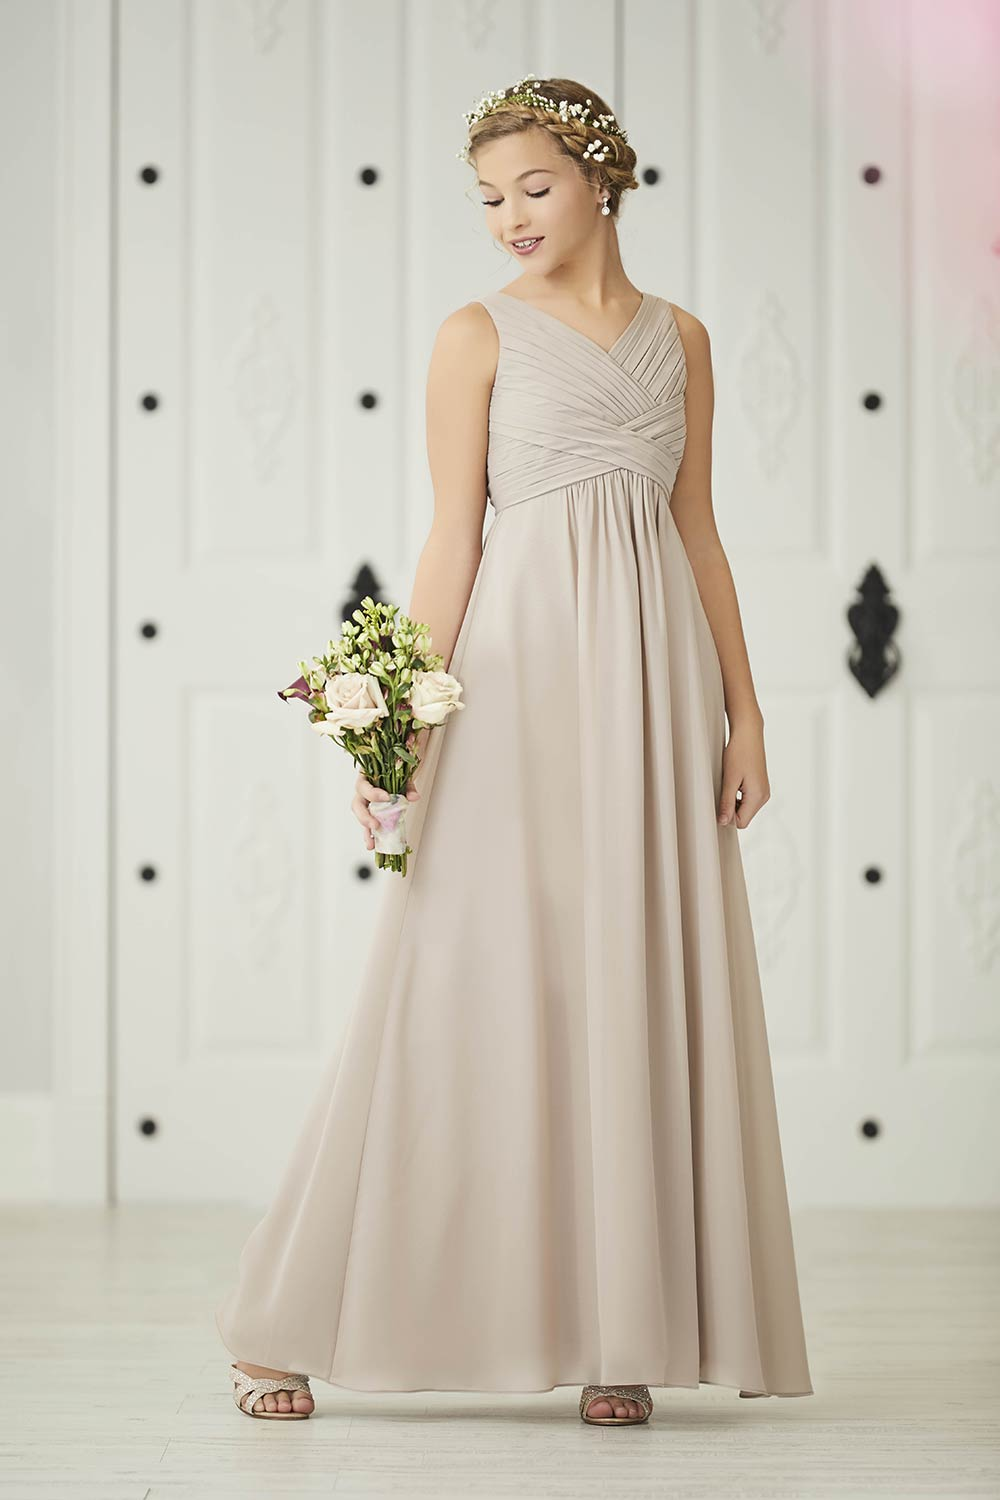 bridesmaid-dresses-jacquelin-bridals-canada-27409